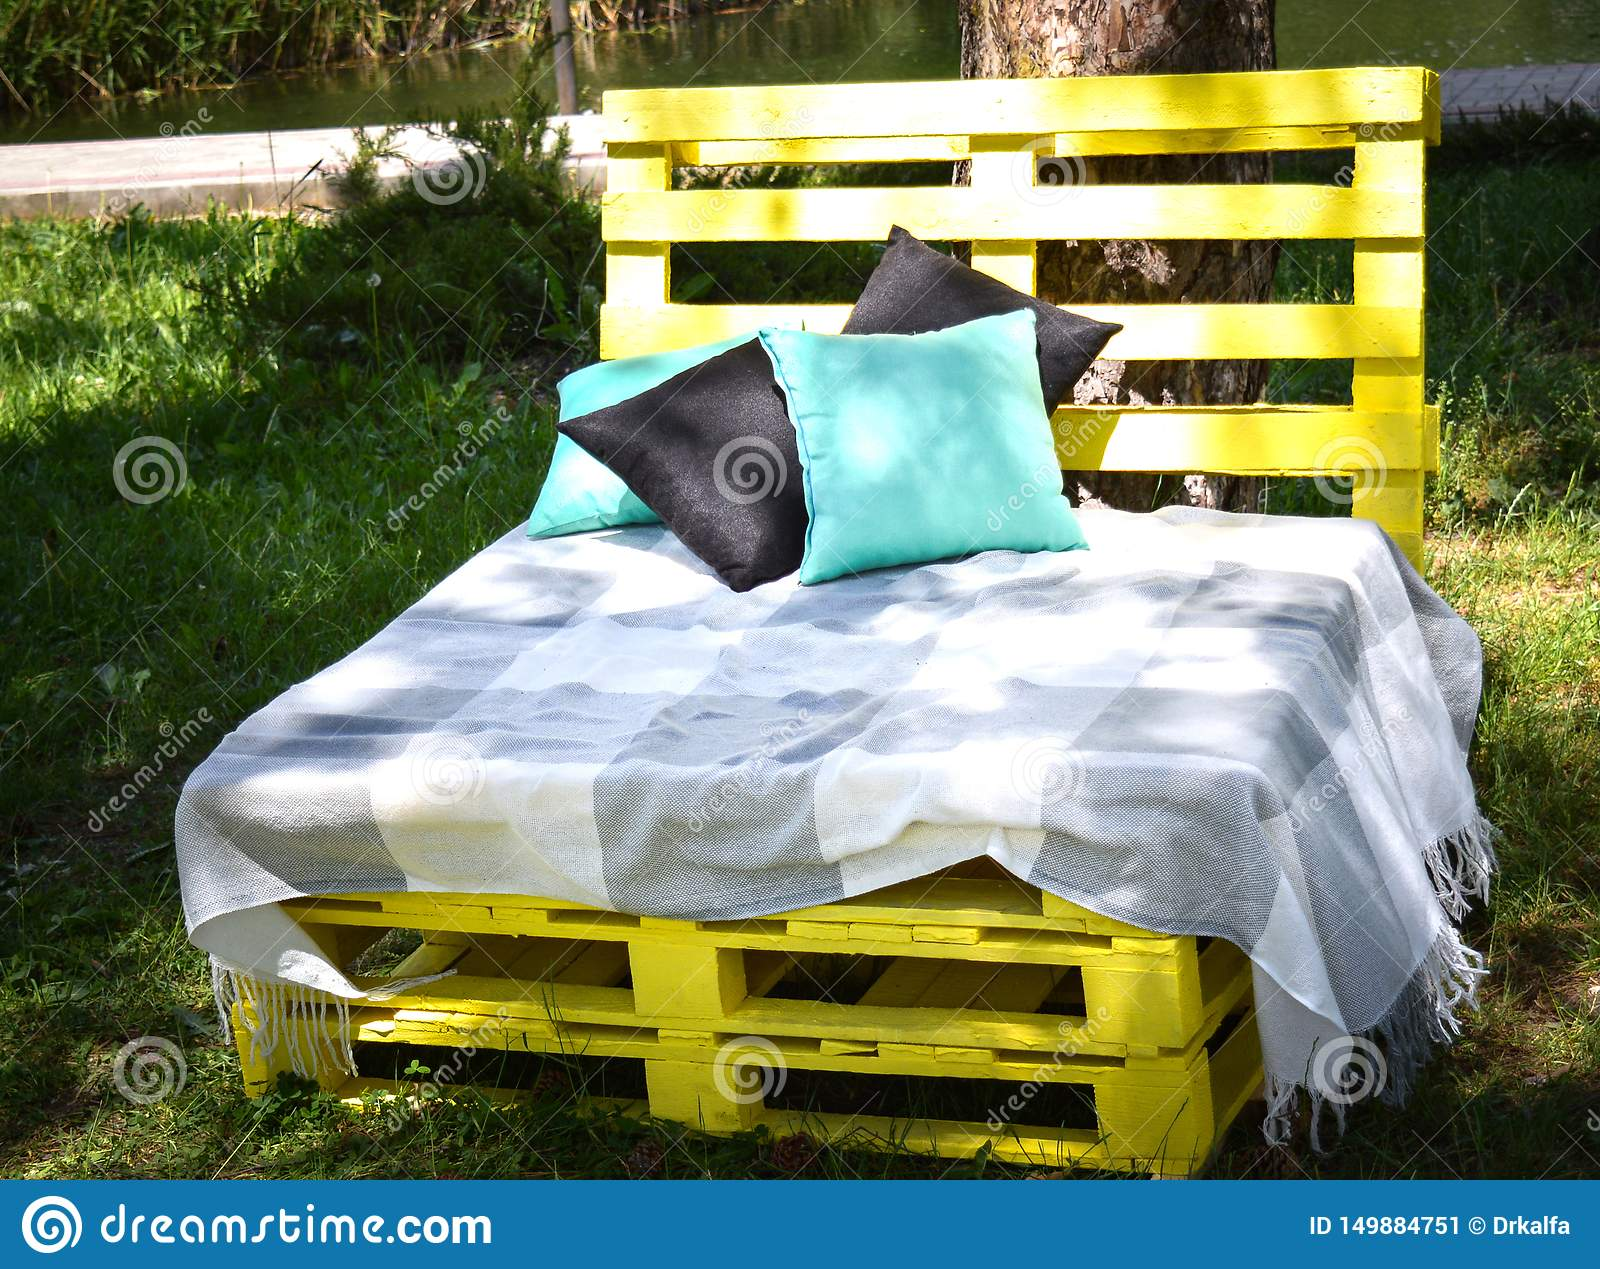 Wooden bench made of yellow pallets of freight cargo cases for sittin with pillows and plaid in the park. The concept of